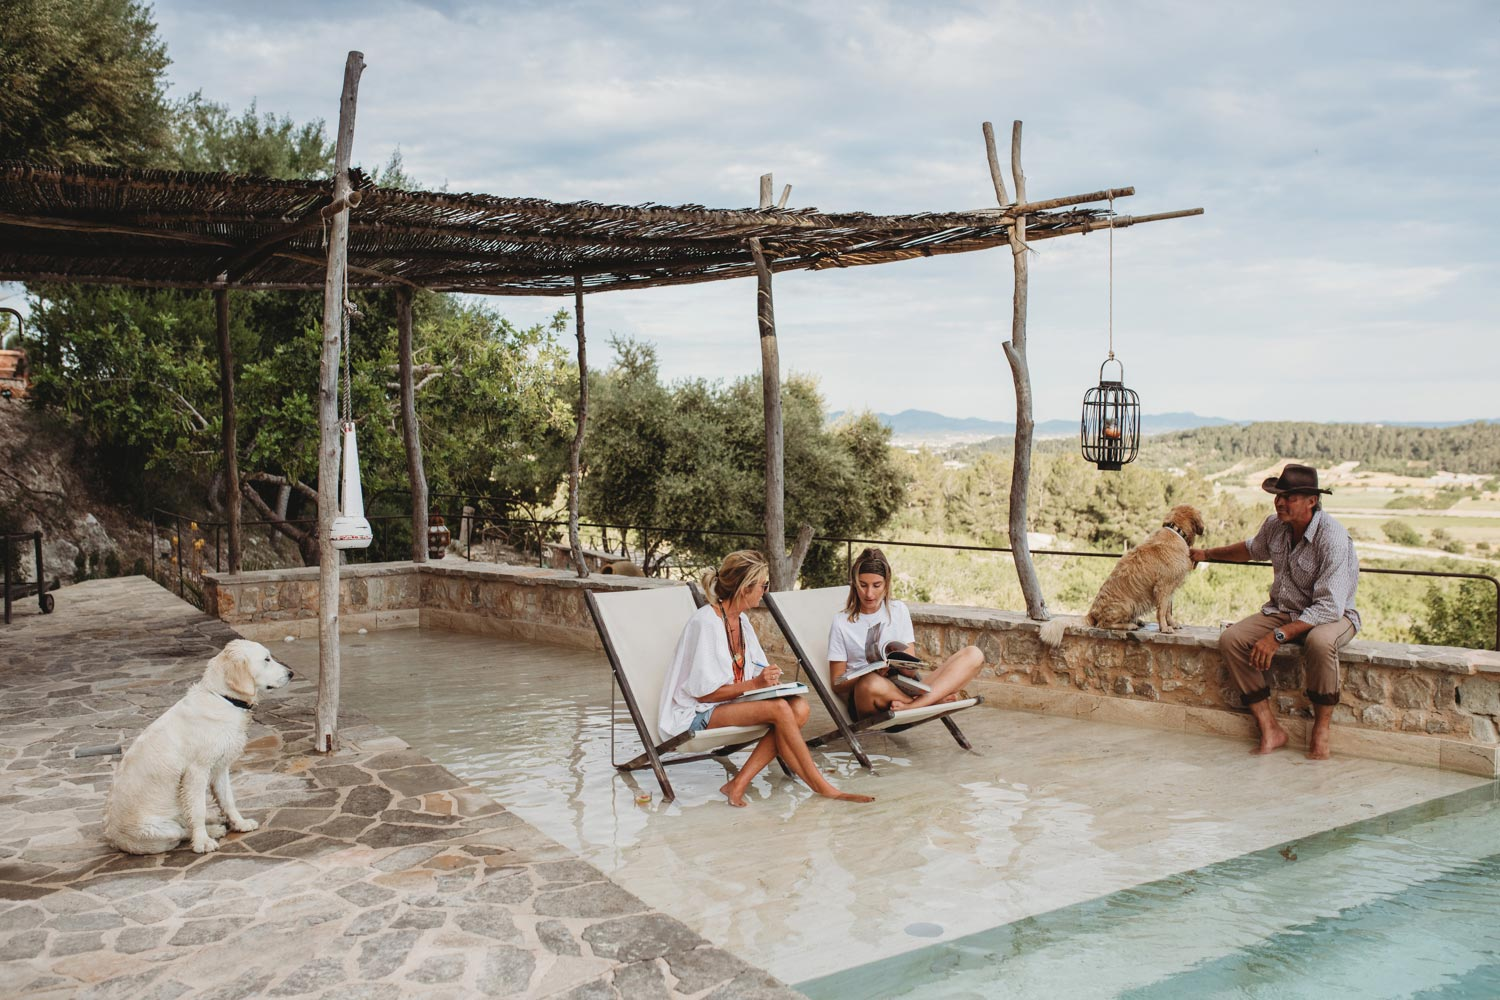 Osa Major's Brenda Ooteman On Living A Barefoot Life in Mallorca